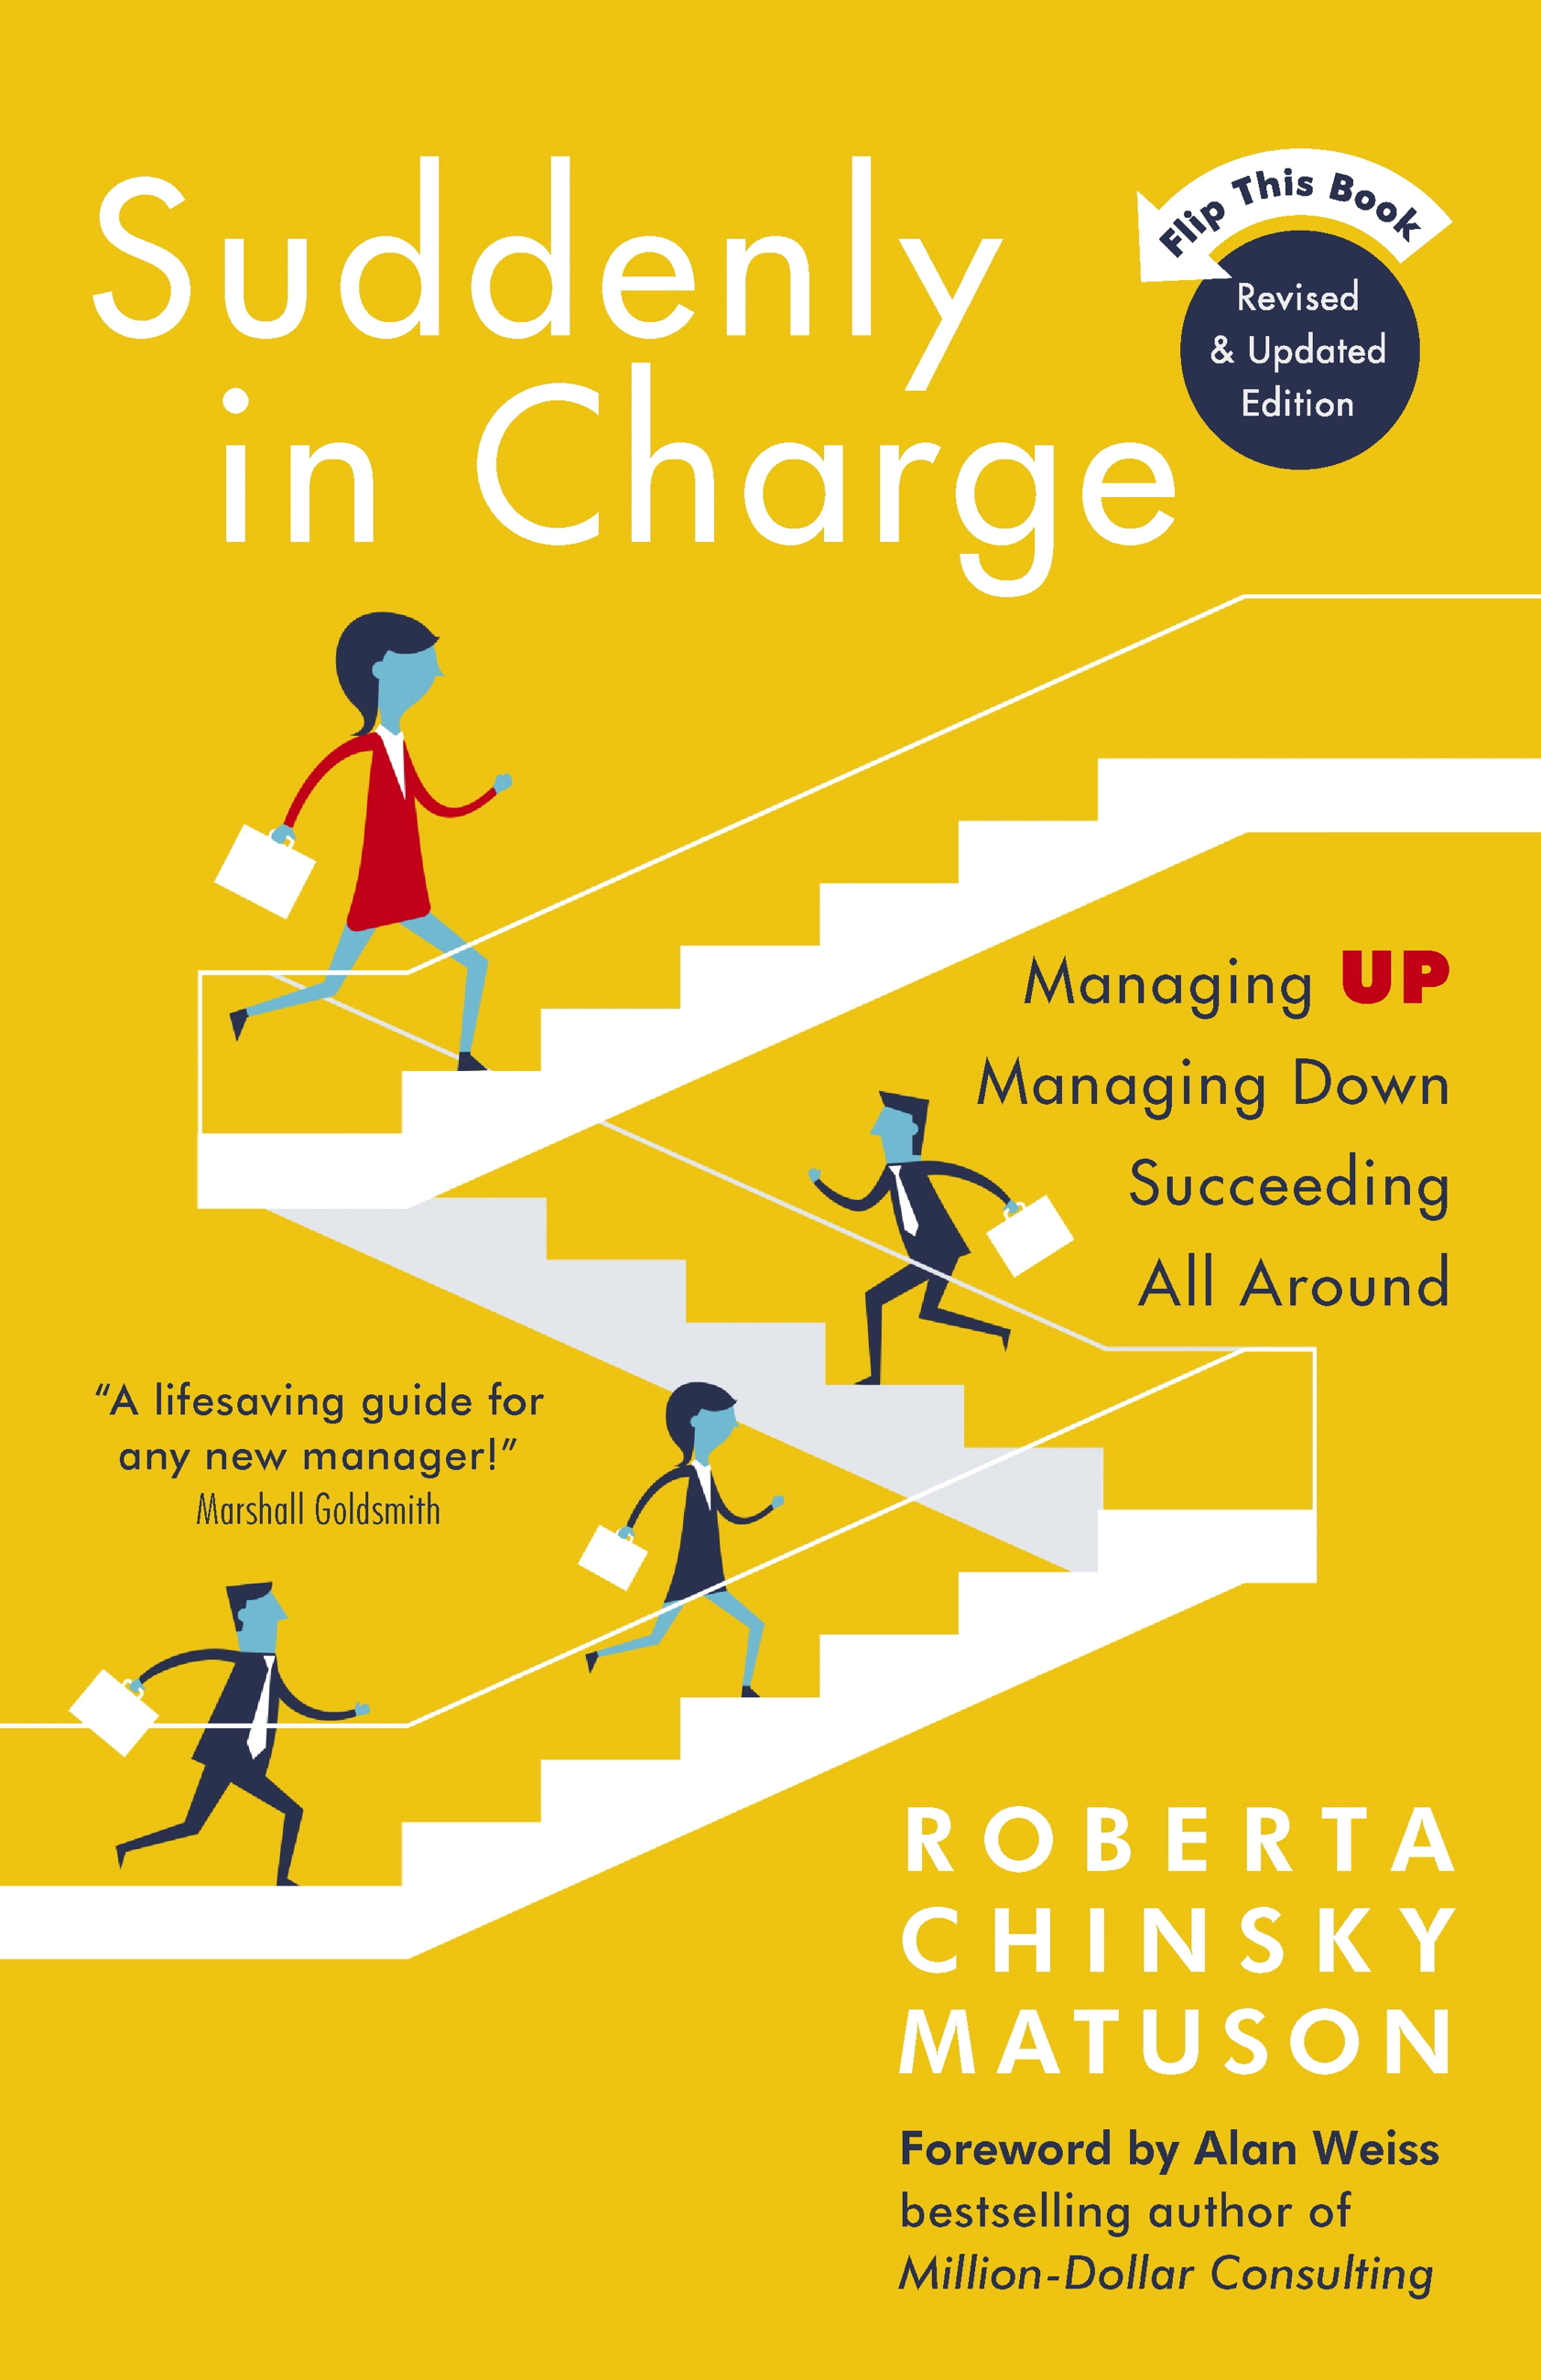 Download Ebook Suddenly in Charge by Roberta Chinsky Matuson Pdf